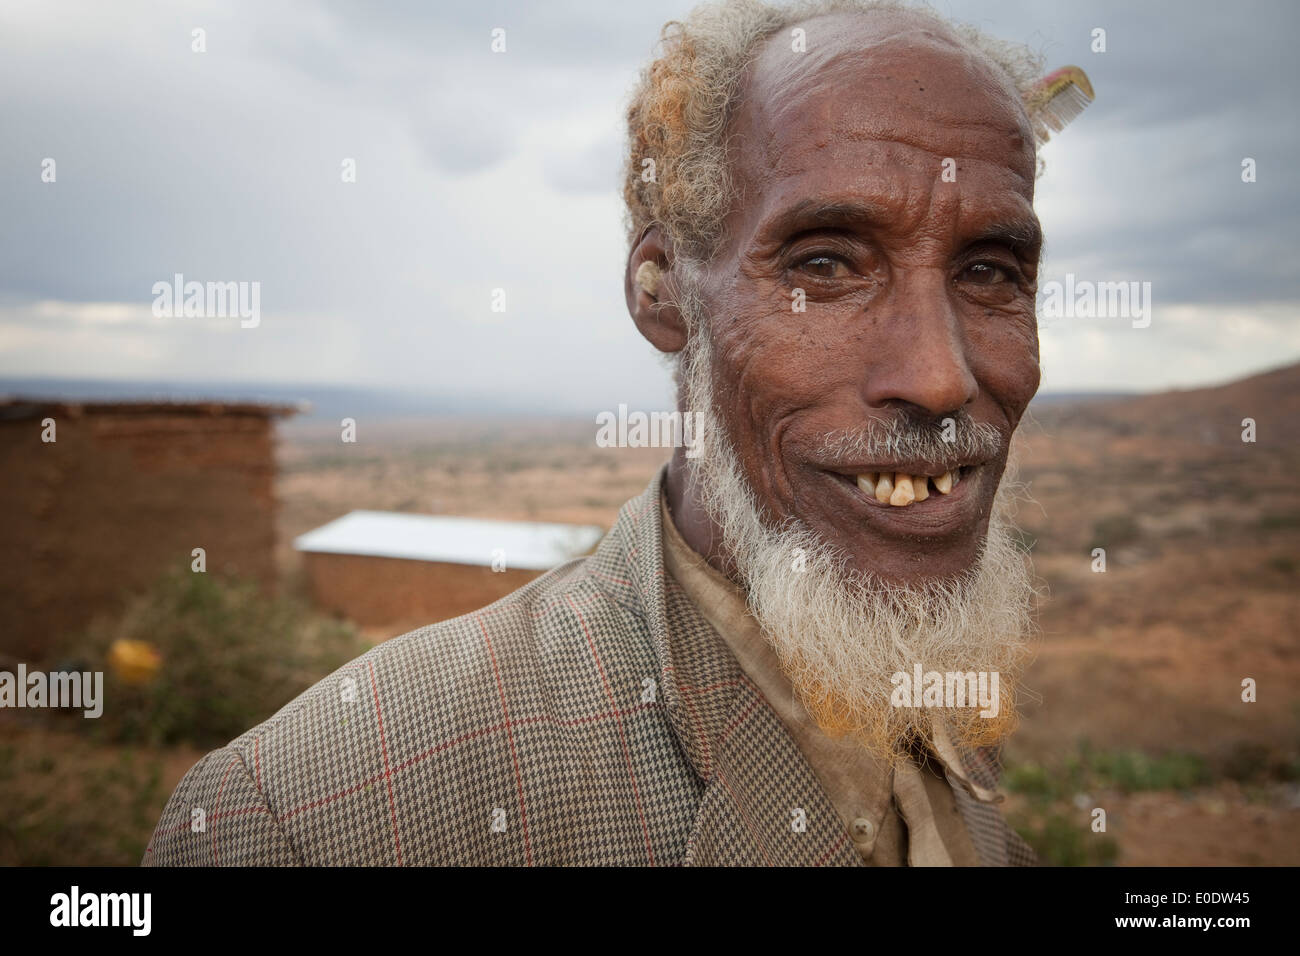 Portrait of a man in Koremi village, near Harar, in the Ethiopian Highlands of Africa. Stock Photo